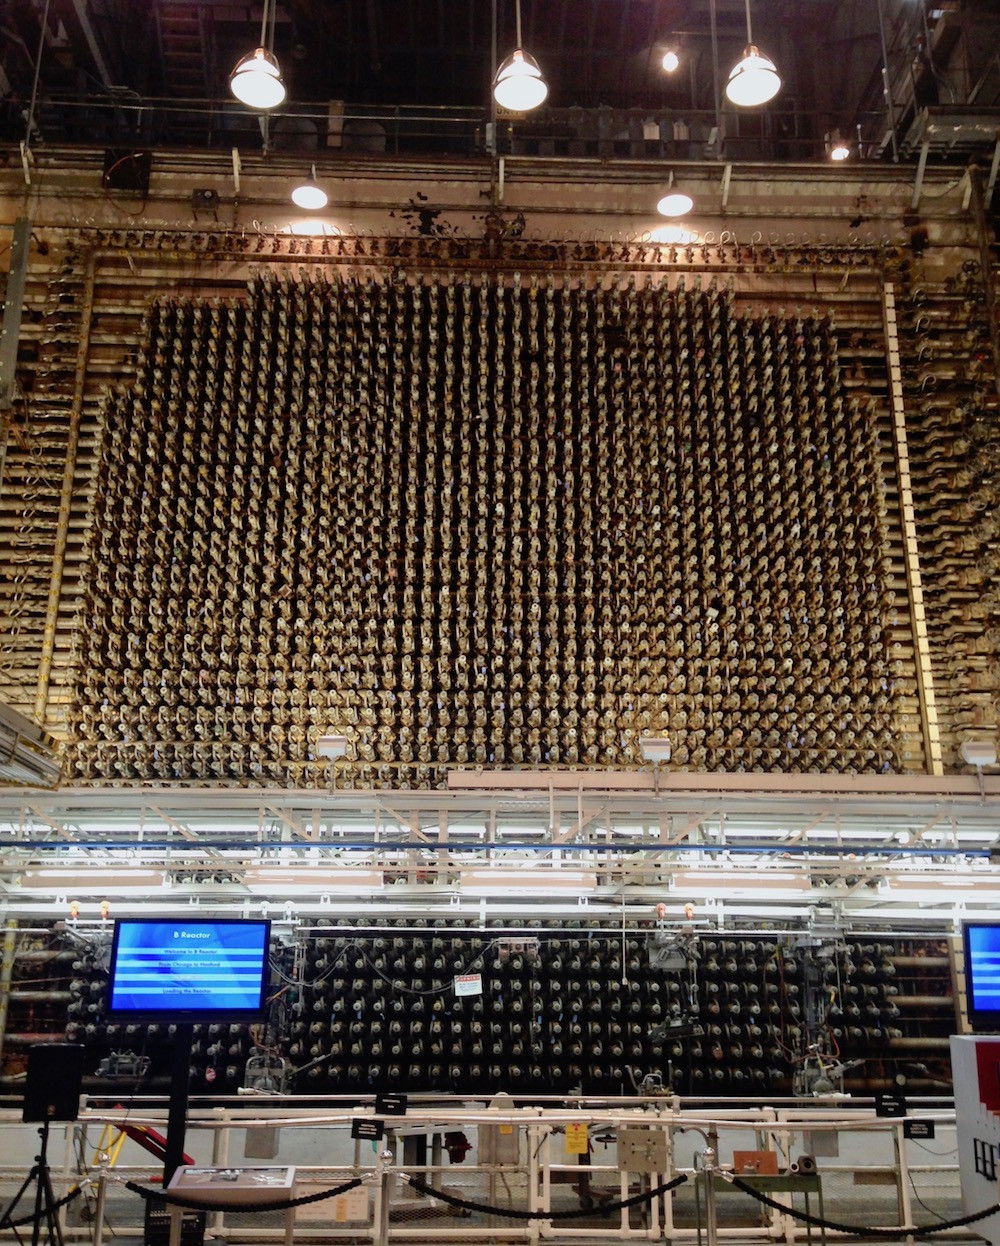 B reactor as seen in 2017, at the Hanford site, Richland, Washington